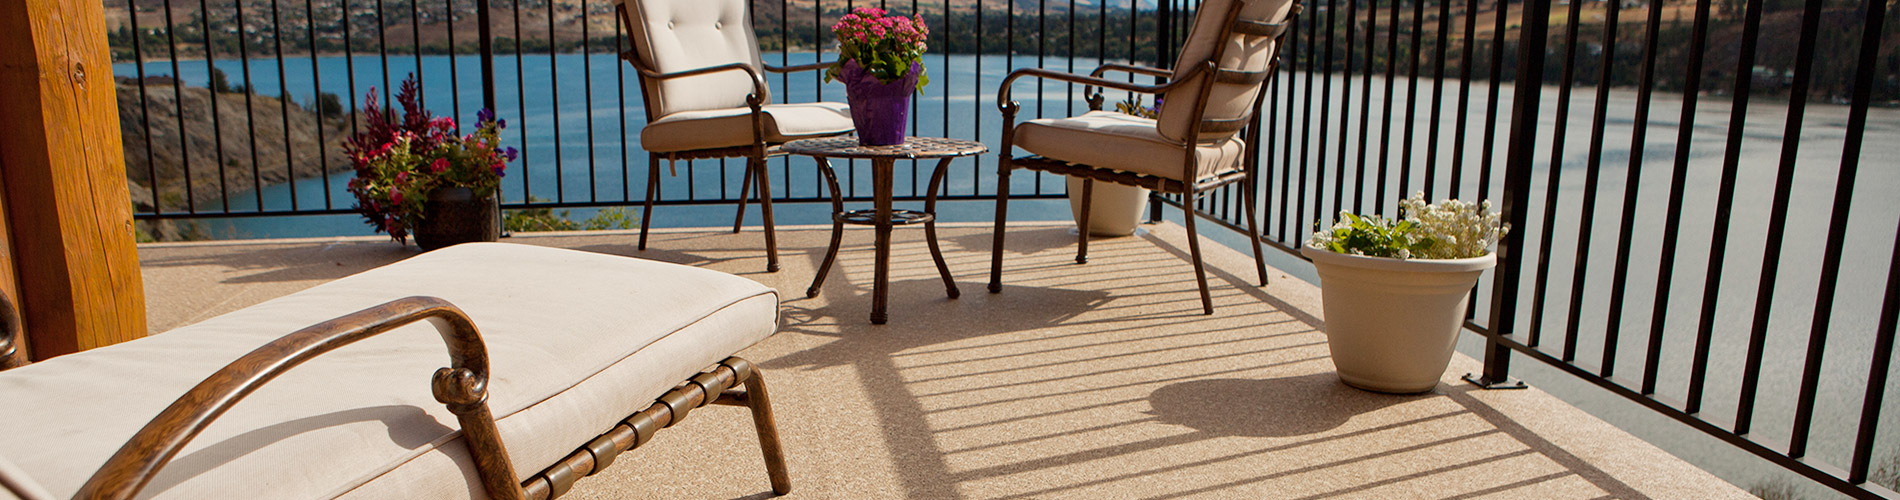 Amazing Exterior Vinyl Flooring #7: The U0026quot; WORLDu0026#39;S STRONGEST U0026quot; Vinyl Decking